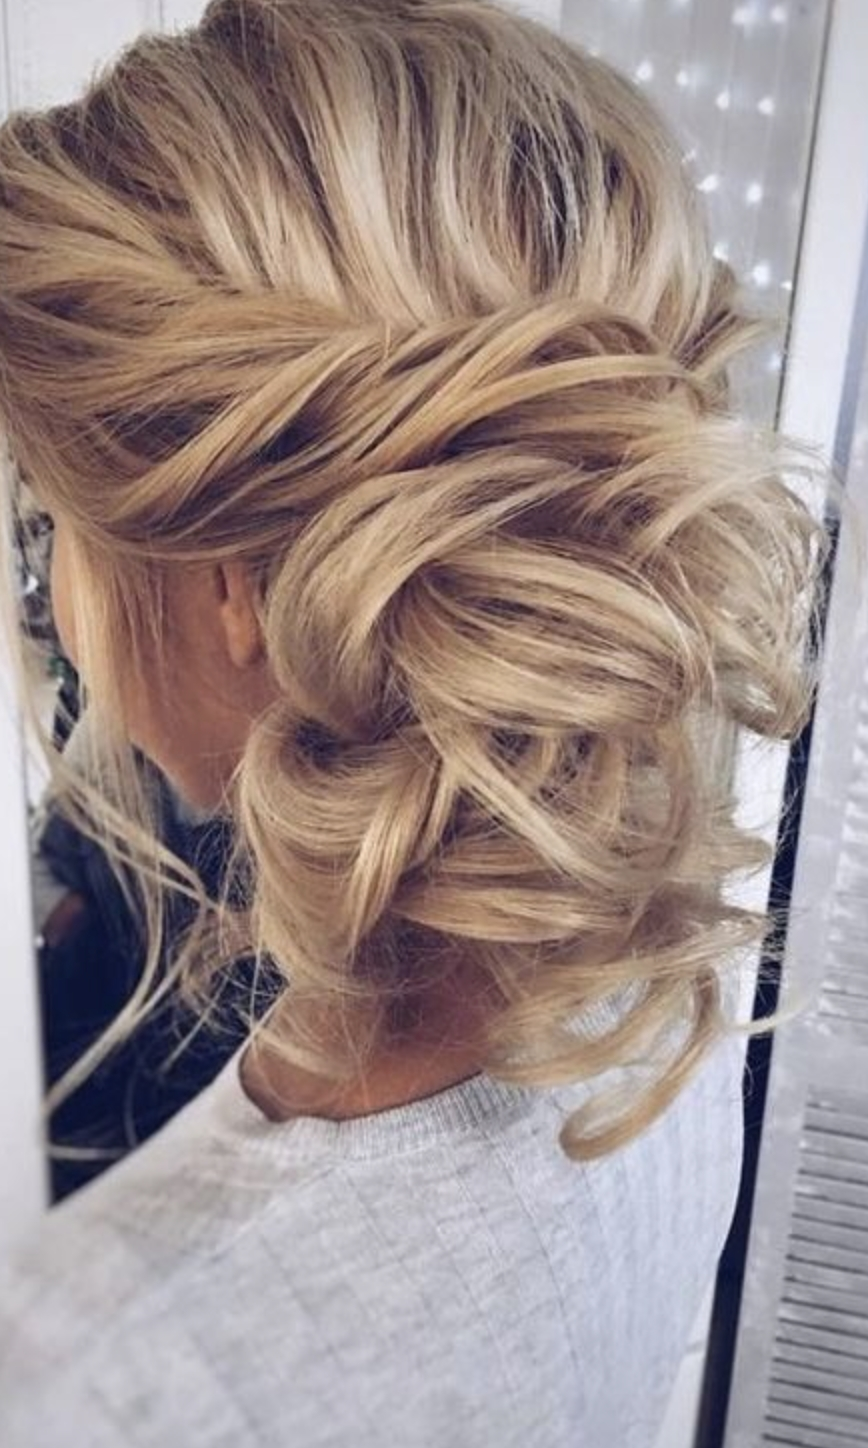 Messy Updo X Girlgetglamoroushair Clip In Hair Extensions Beach Day In Latest Long Blond Ponytail Hairstyles With Bump And Sparkling Clip (View 9 of 20)